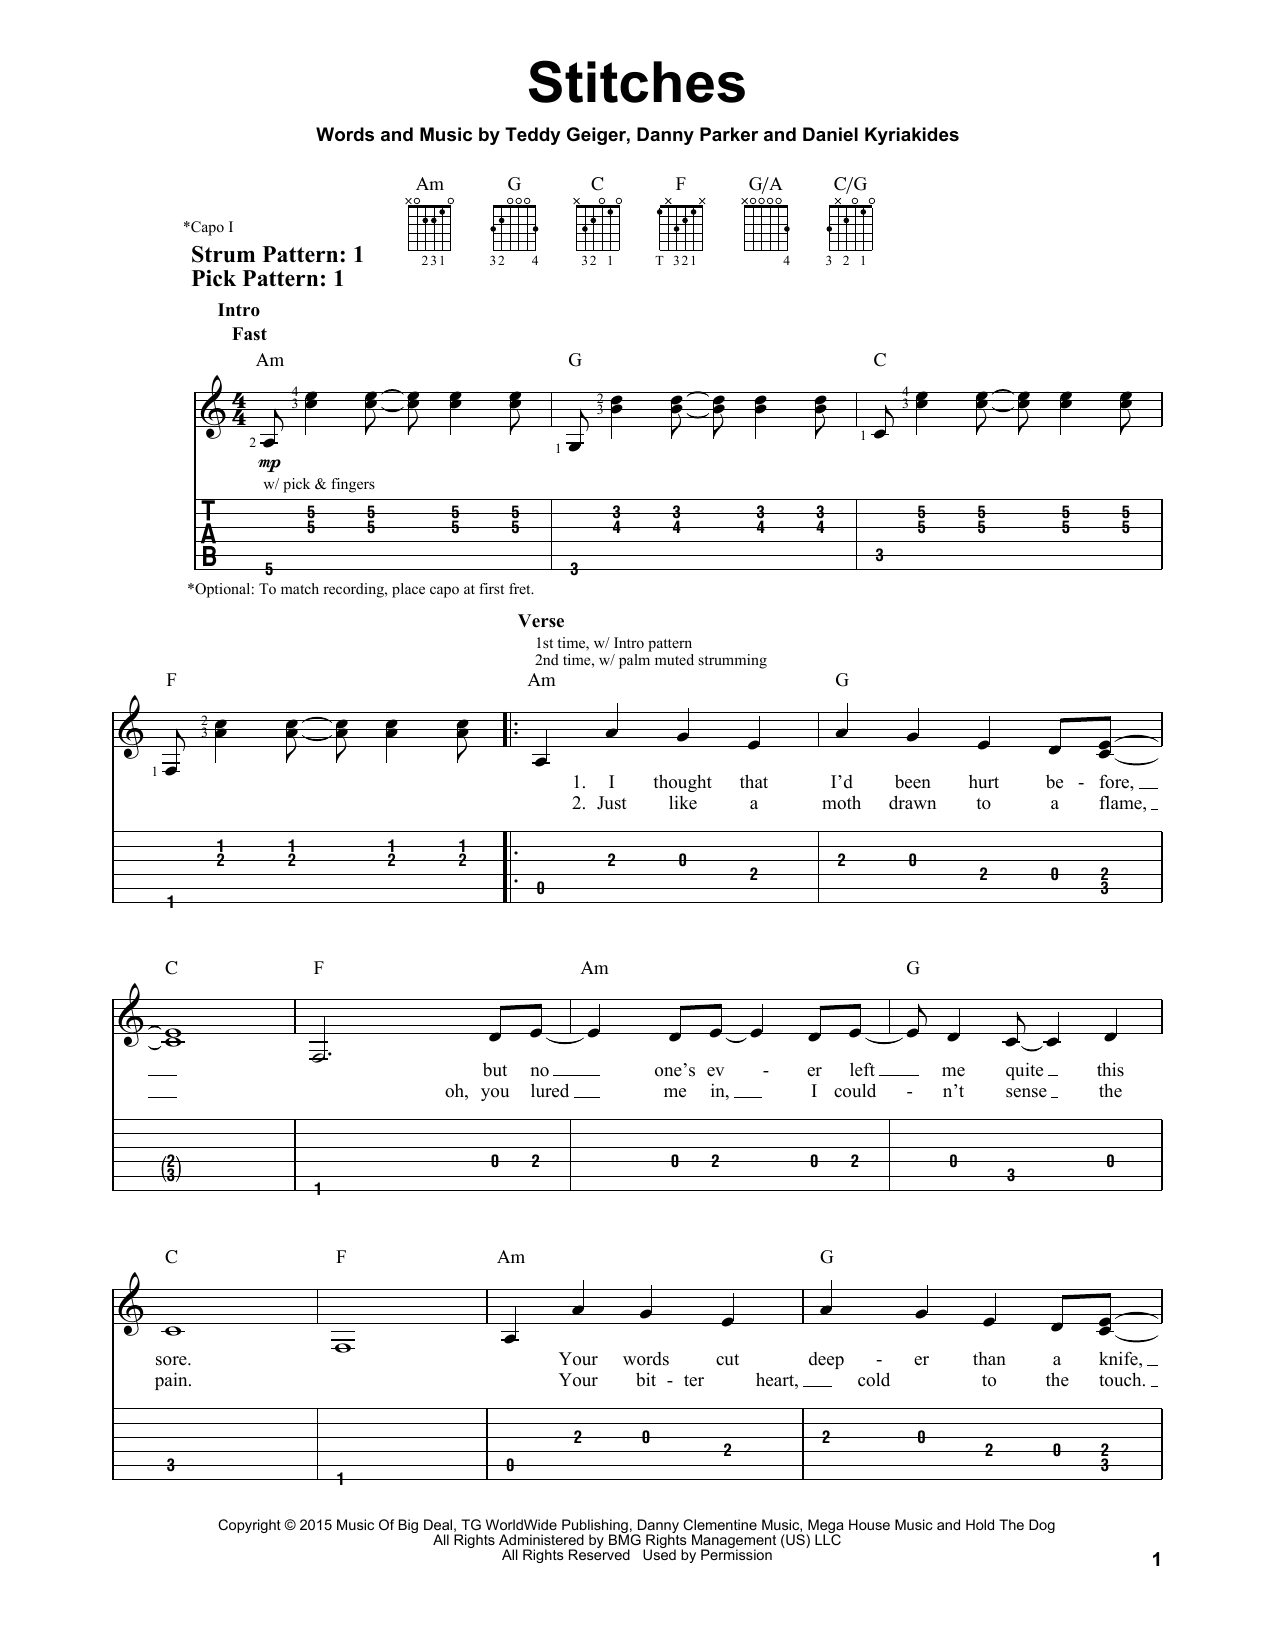 Stitches by Shawn Mendes - Easy Guitar Tab - Guitar Instructor